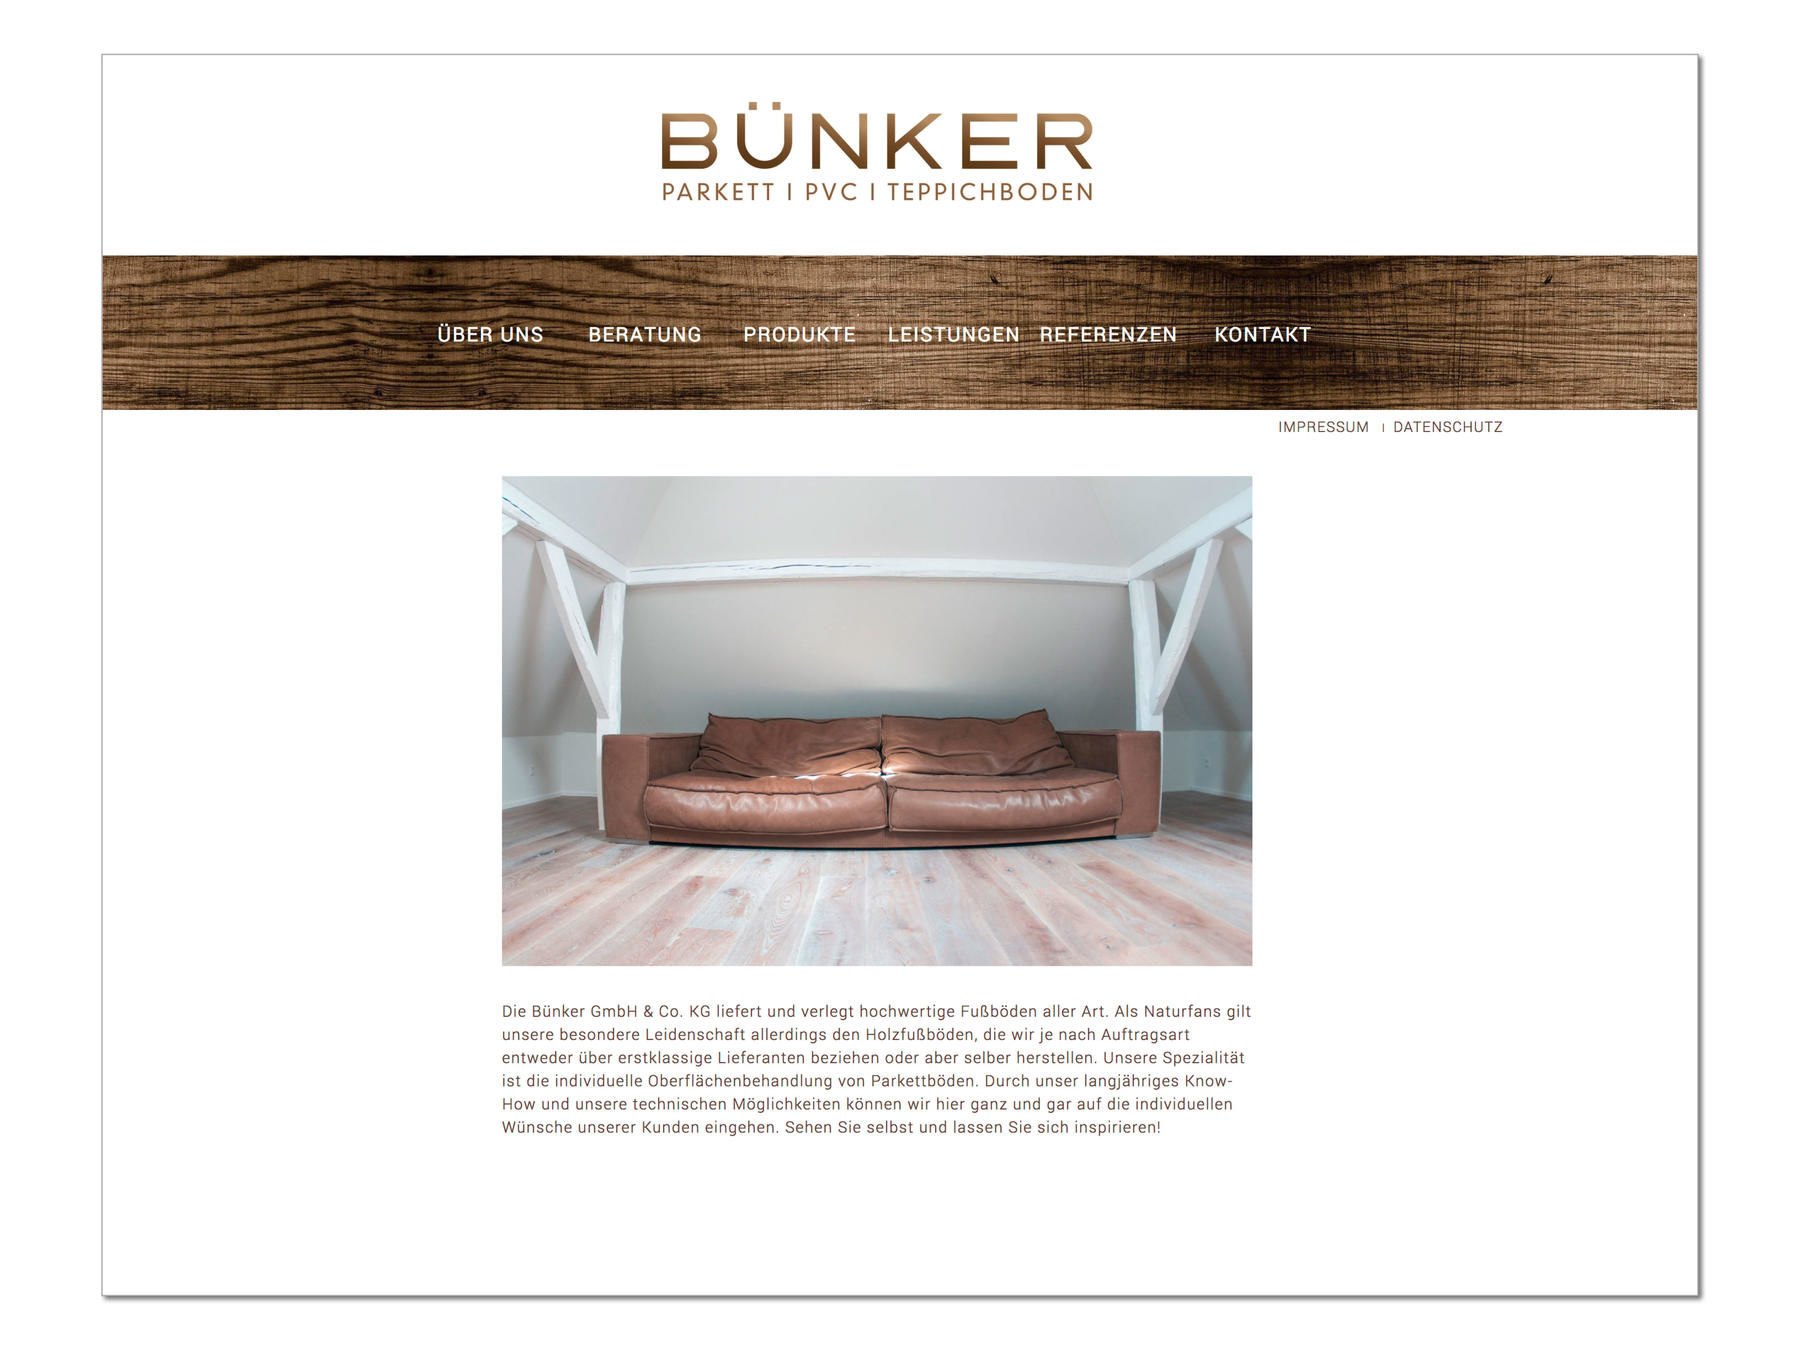 Bünker Parkett, Corporate Design, Website